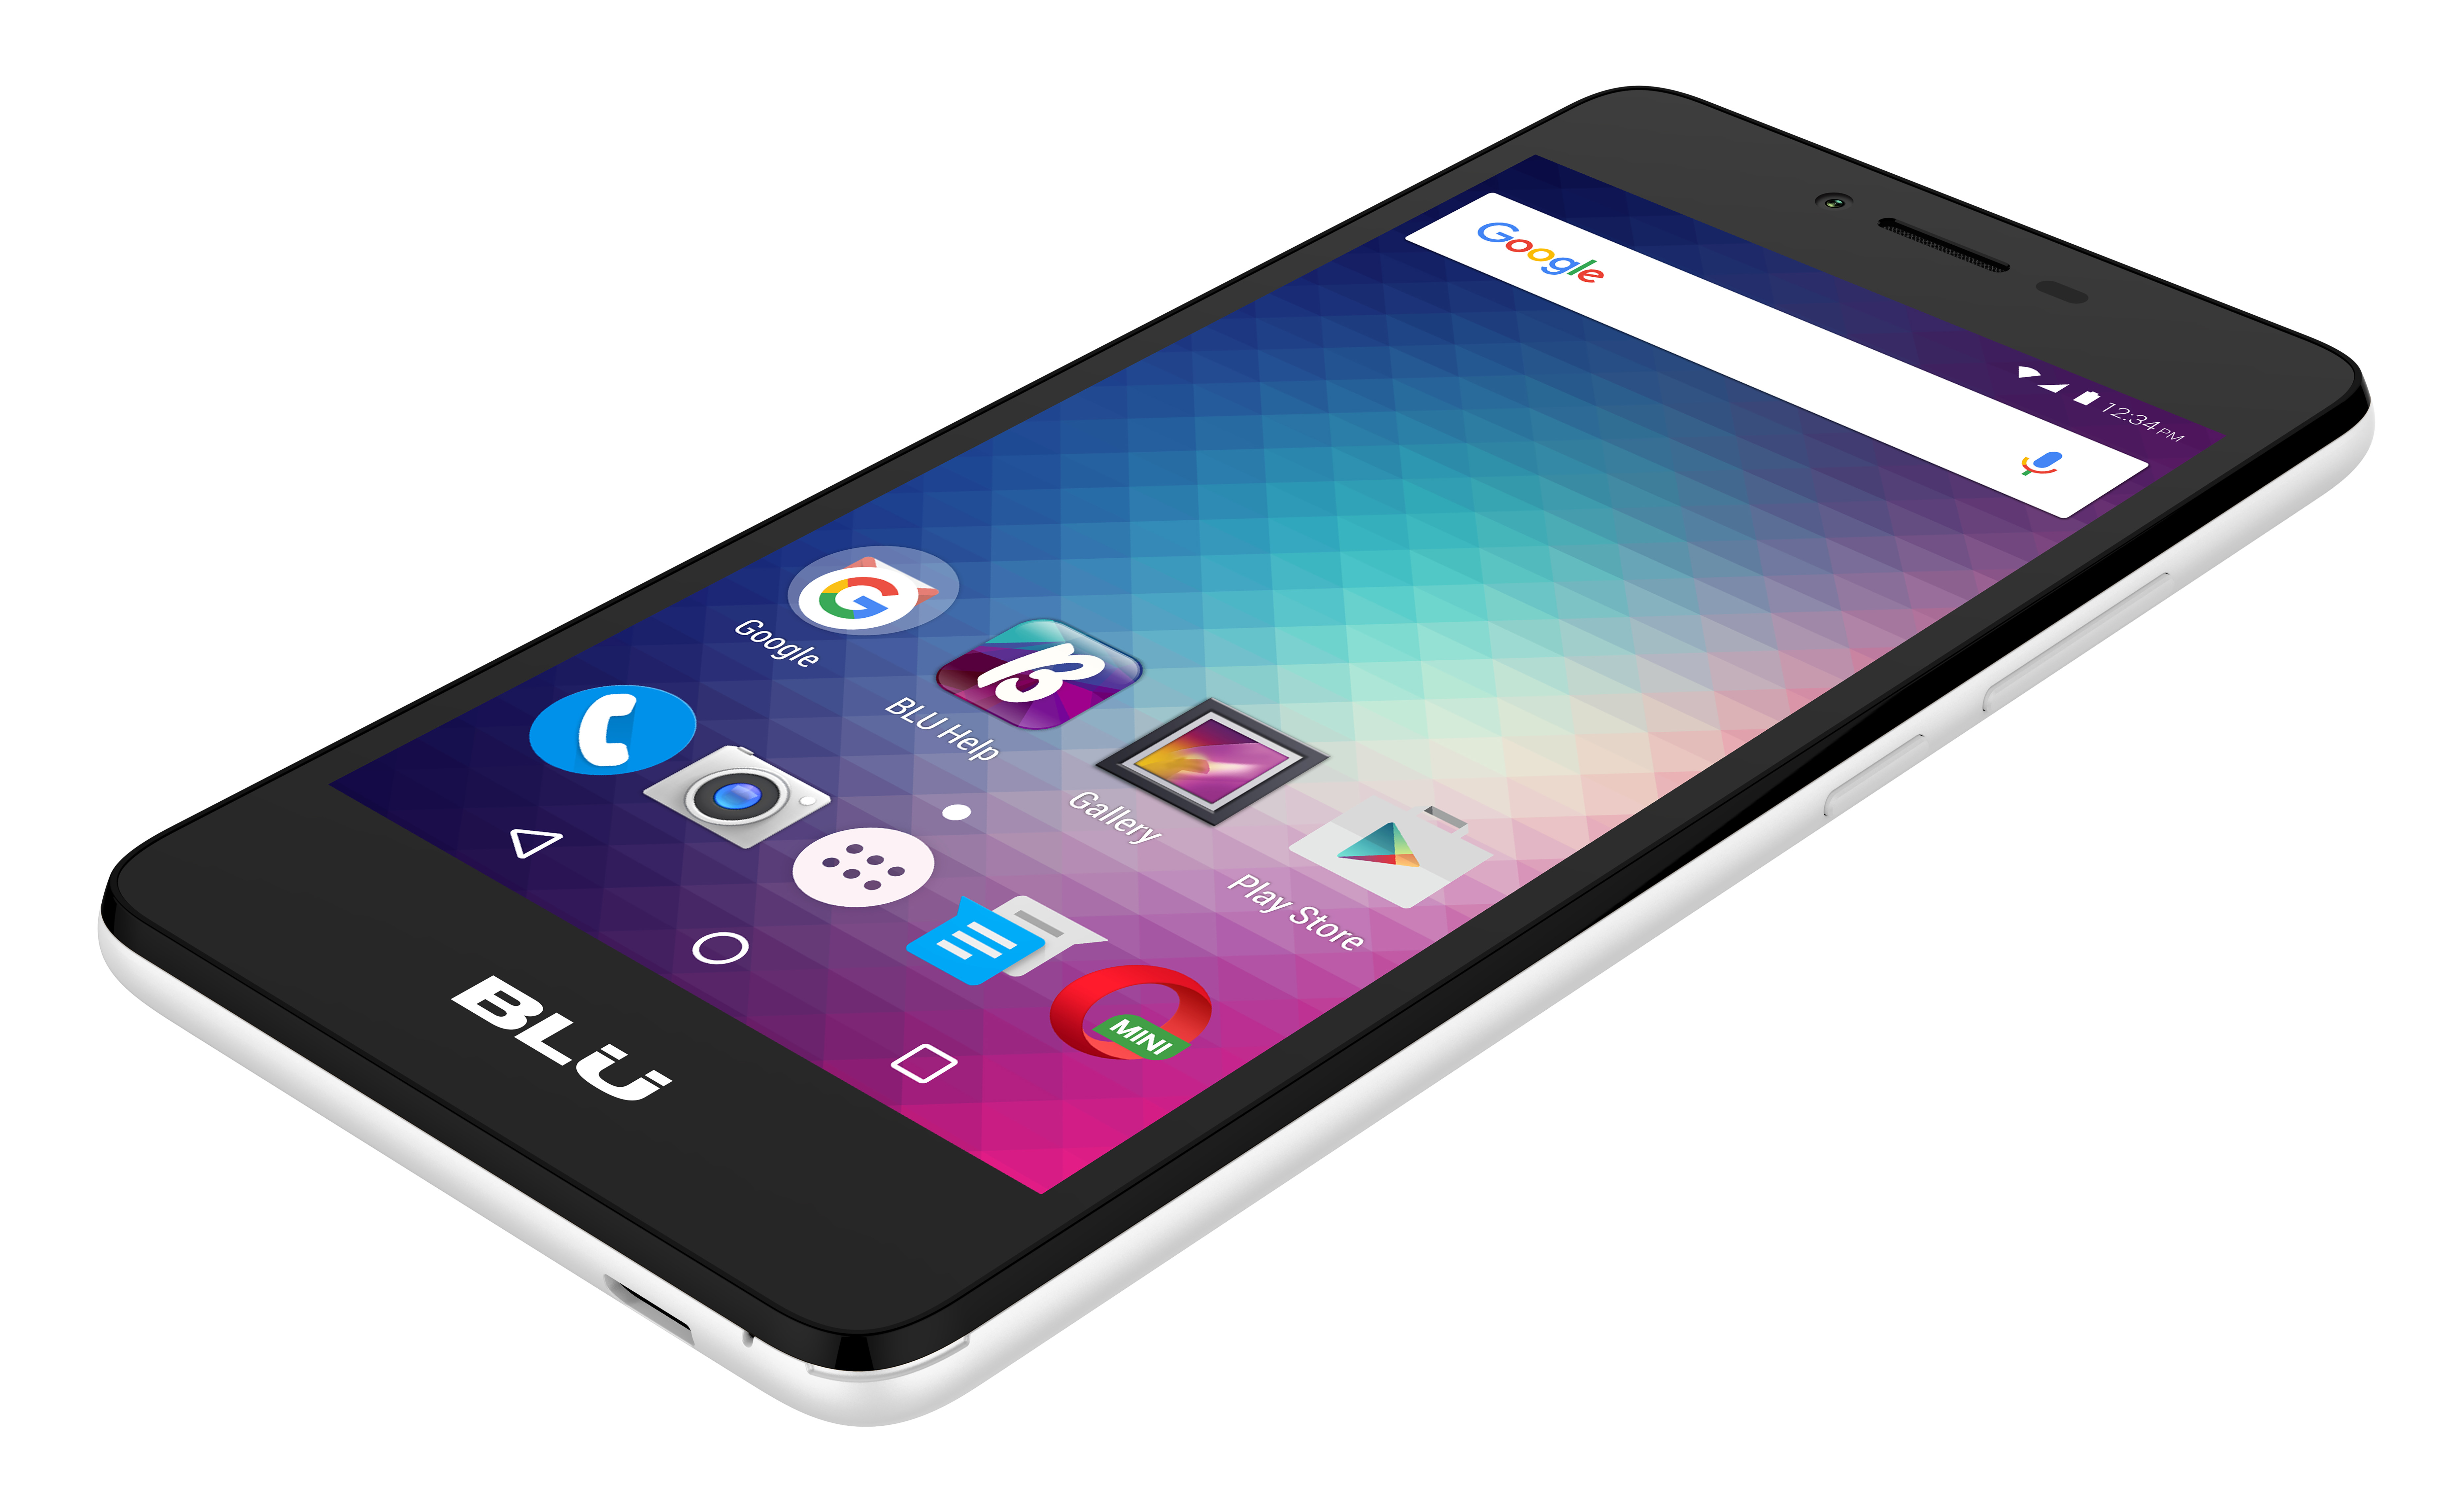 ... Smartphones > See more blu S010qwht Studio G2 Android Smartphone Whit